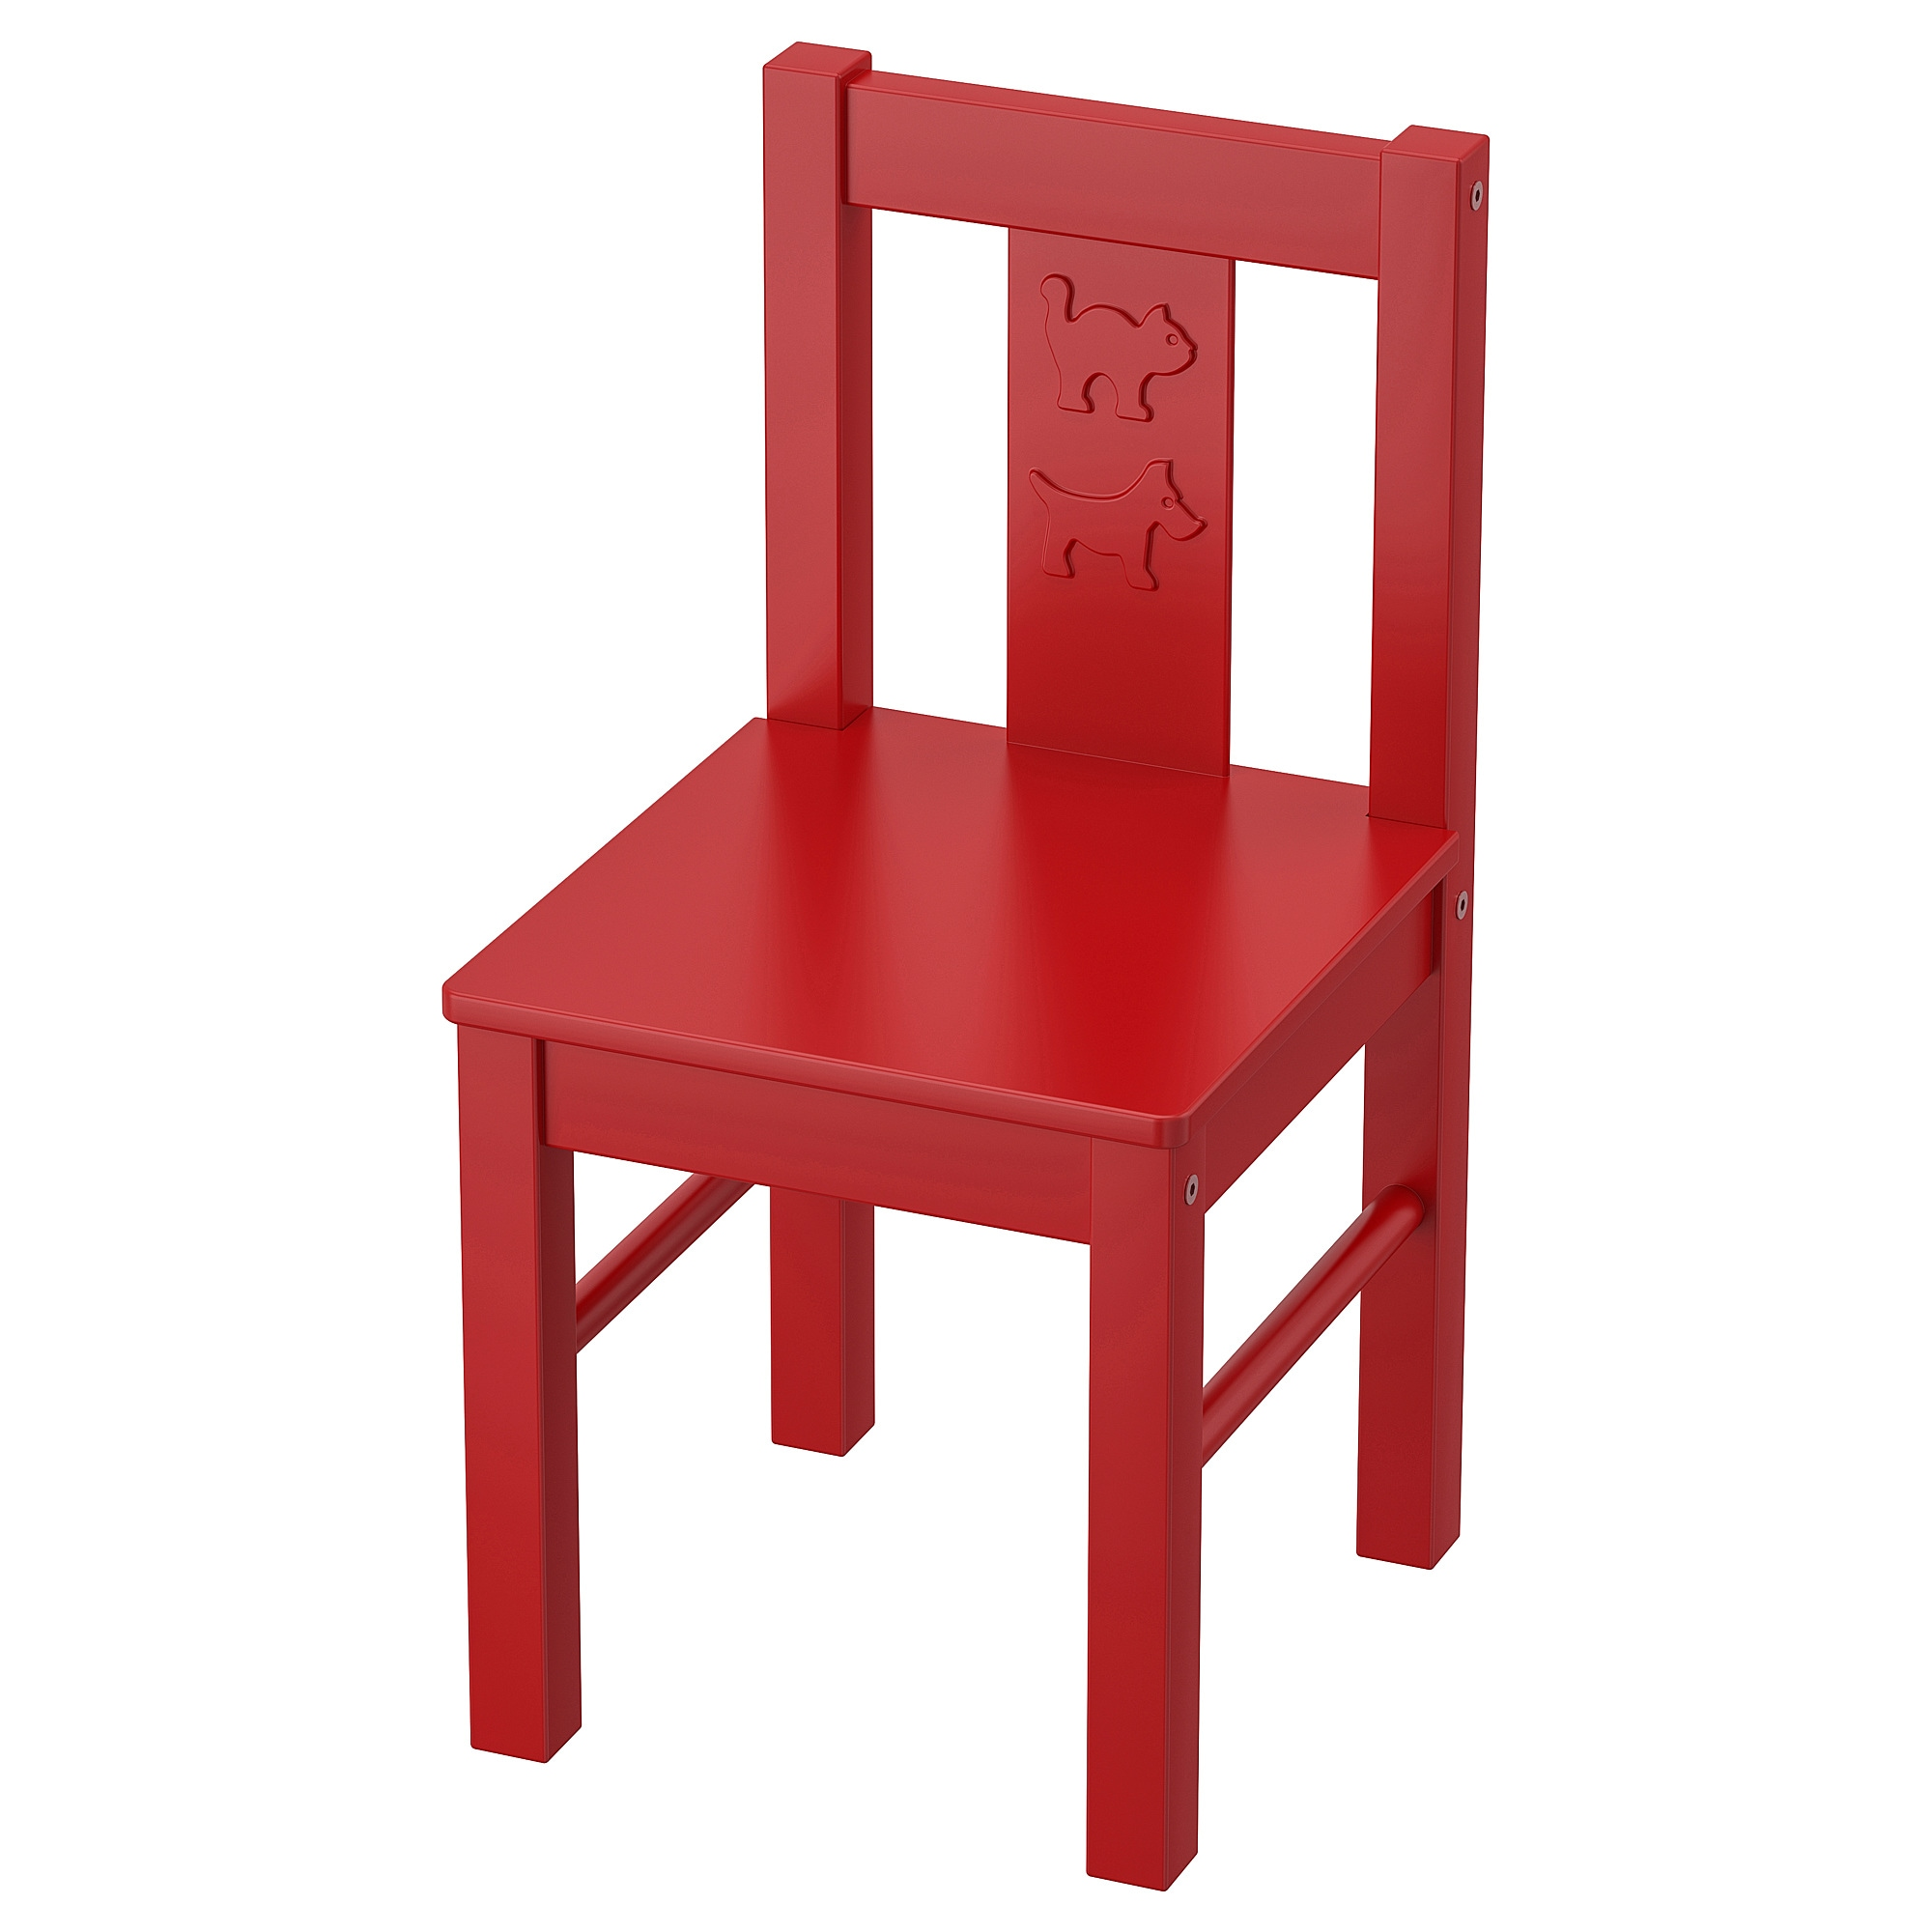 KRITTER Children's chair - red - IKEA